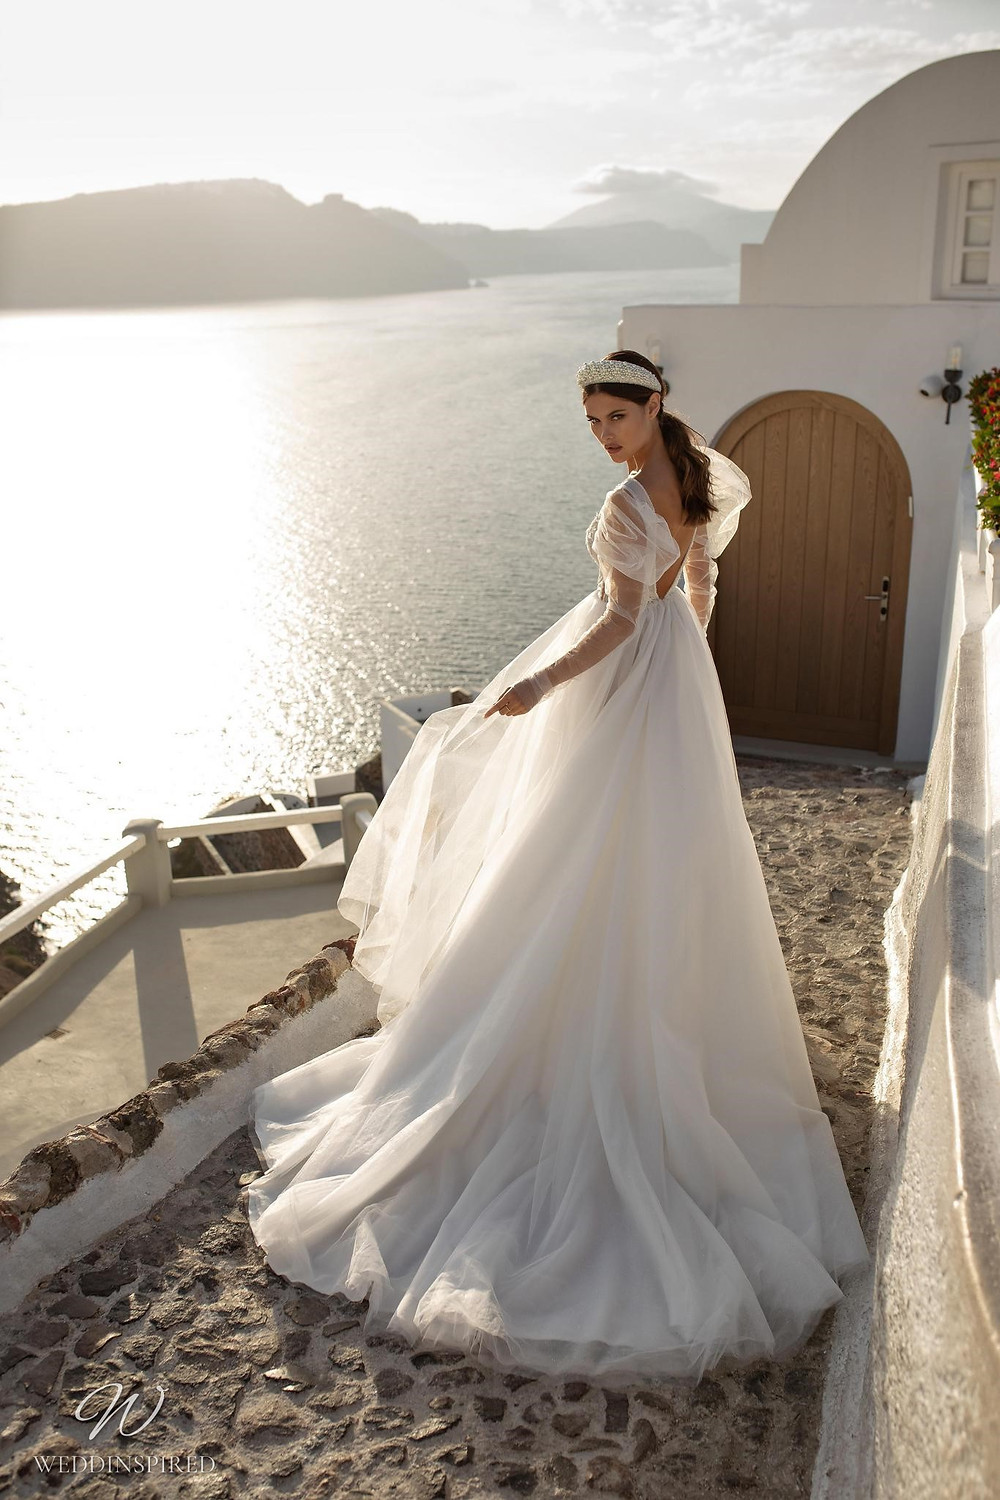 A Ricca Sposa gauzy tulle A-line wedding dress with long tulle sleeves